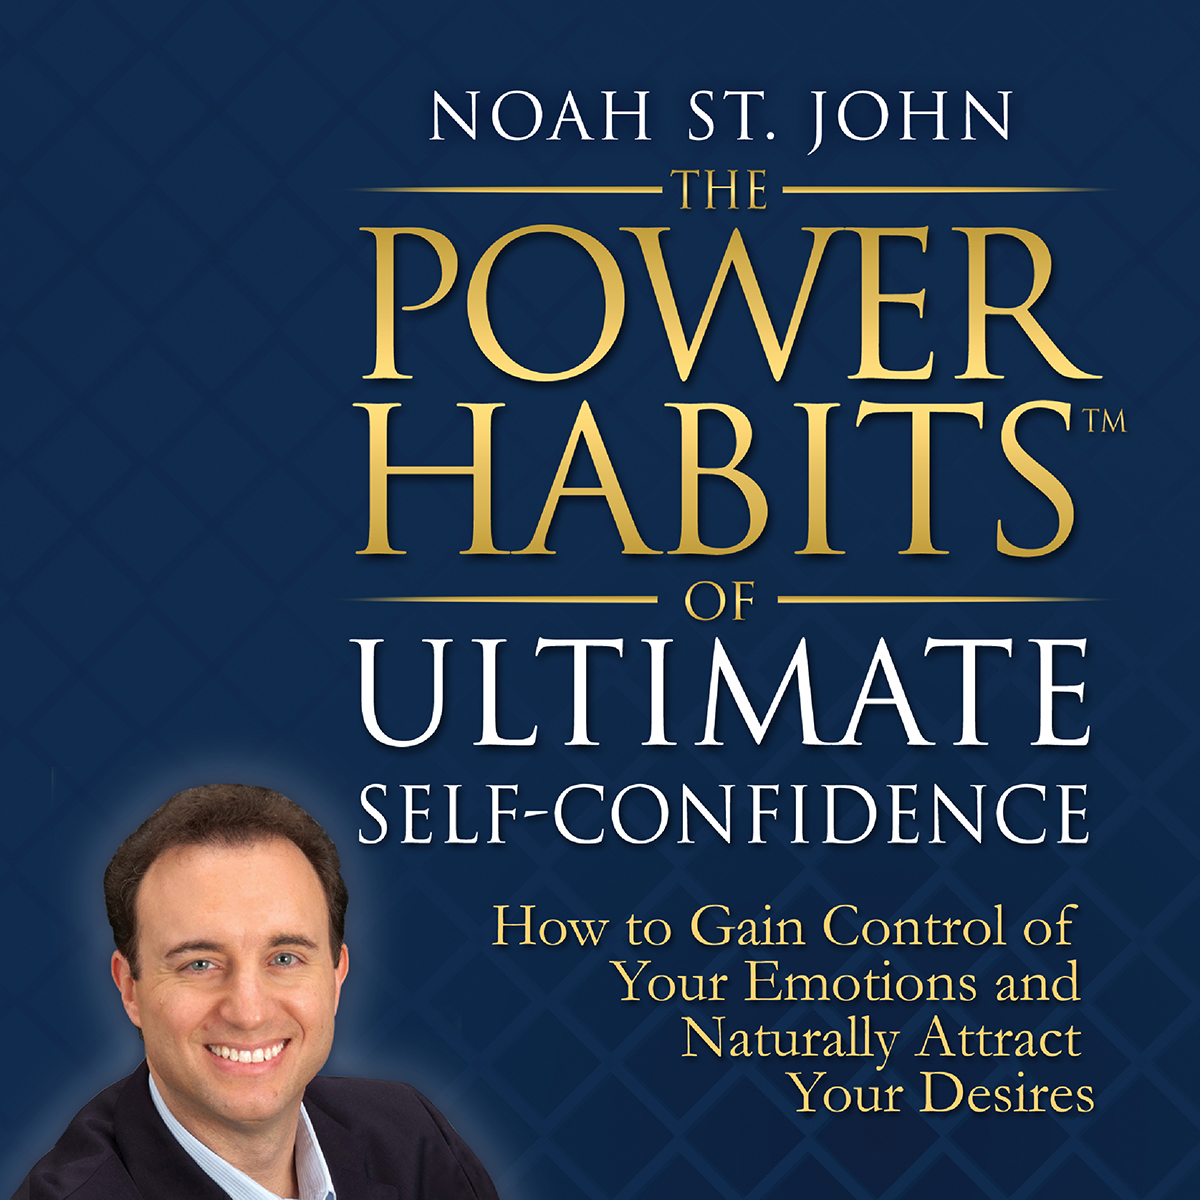 The Power Habits of Ultimate Self-Confidence